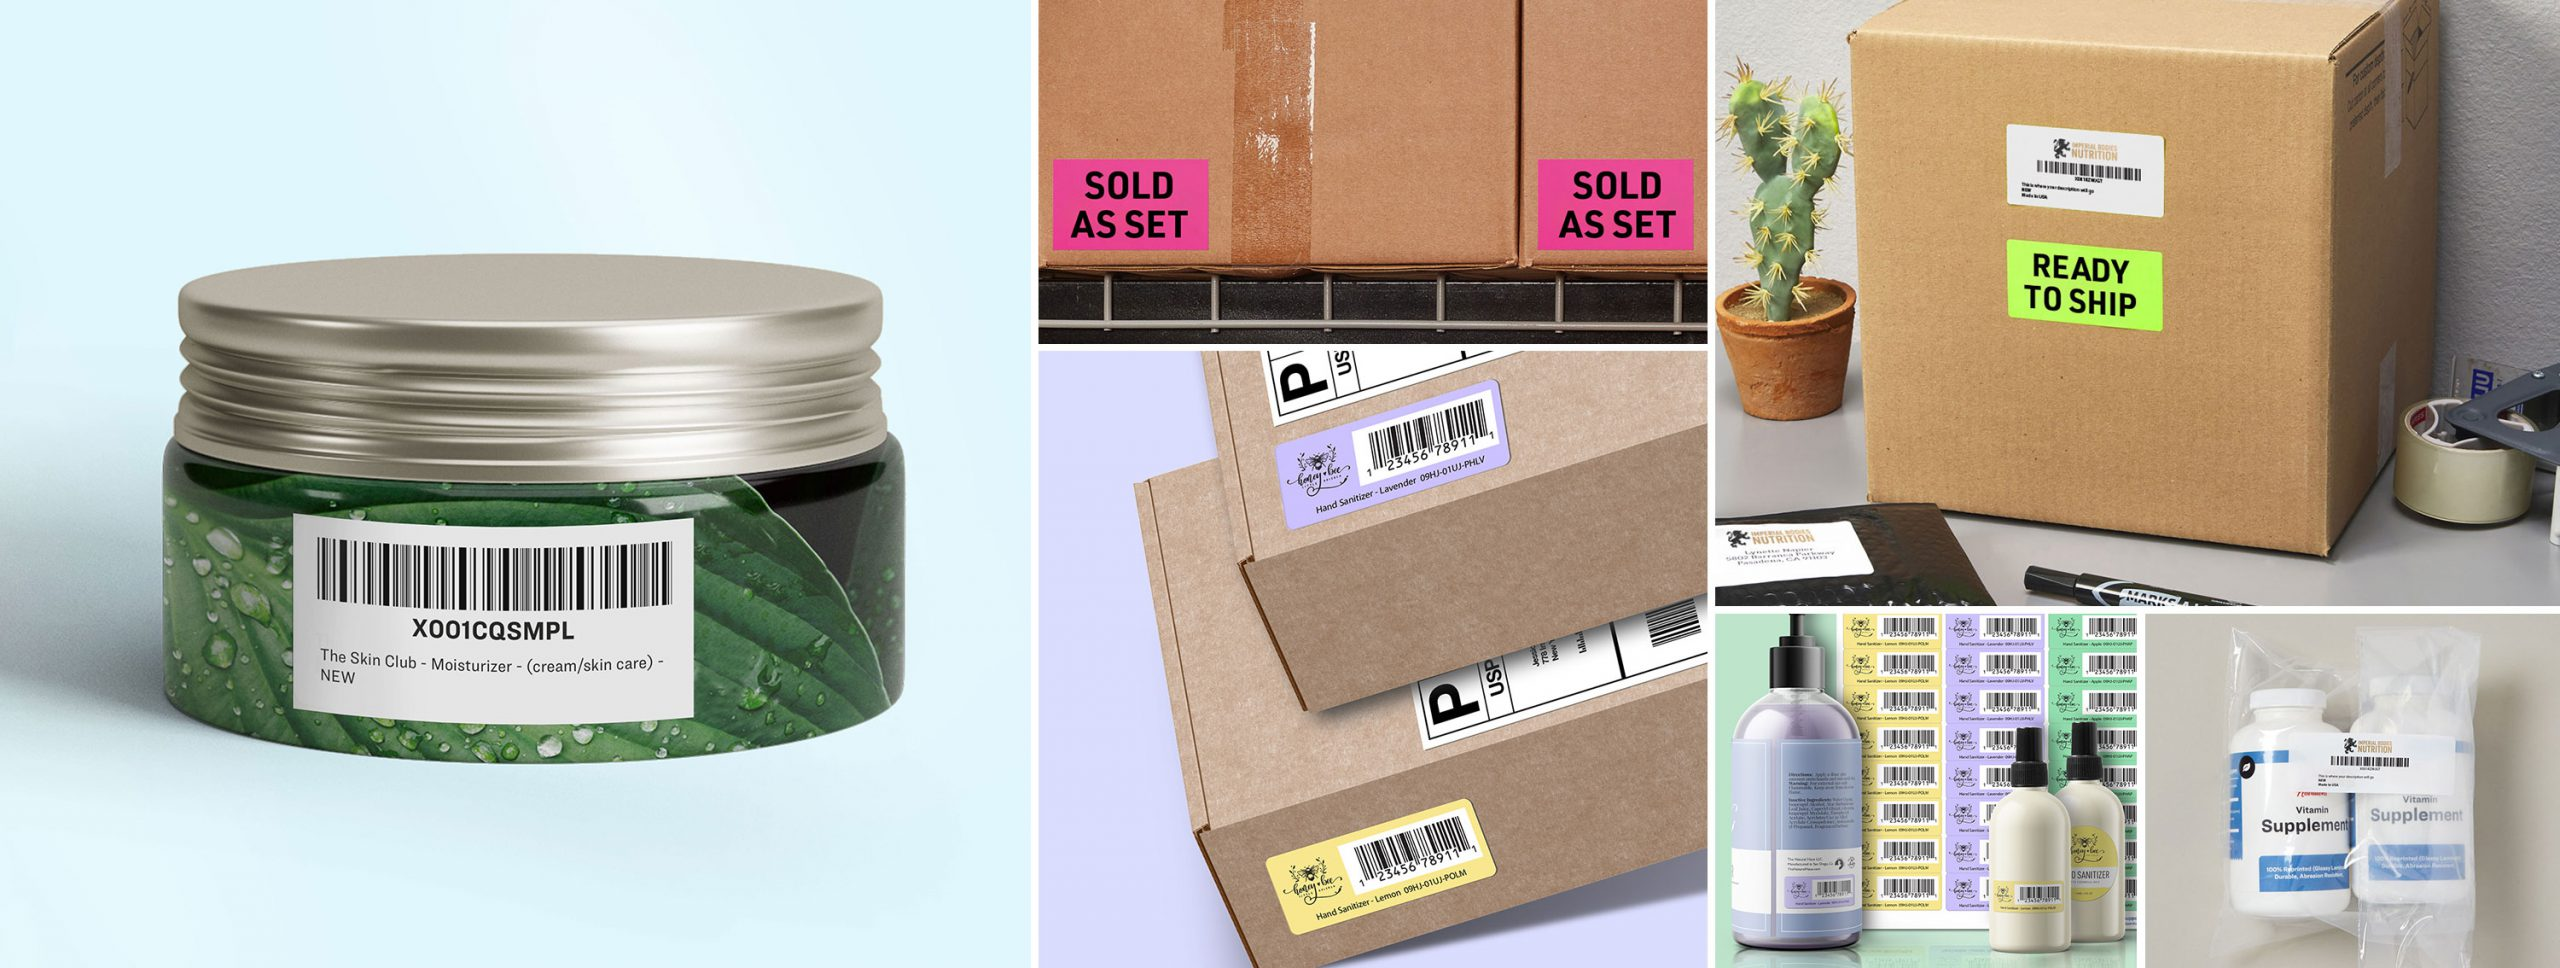 Make sure to apply the right labels for Amazon FBA shipments